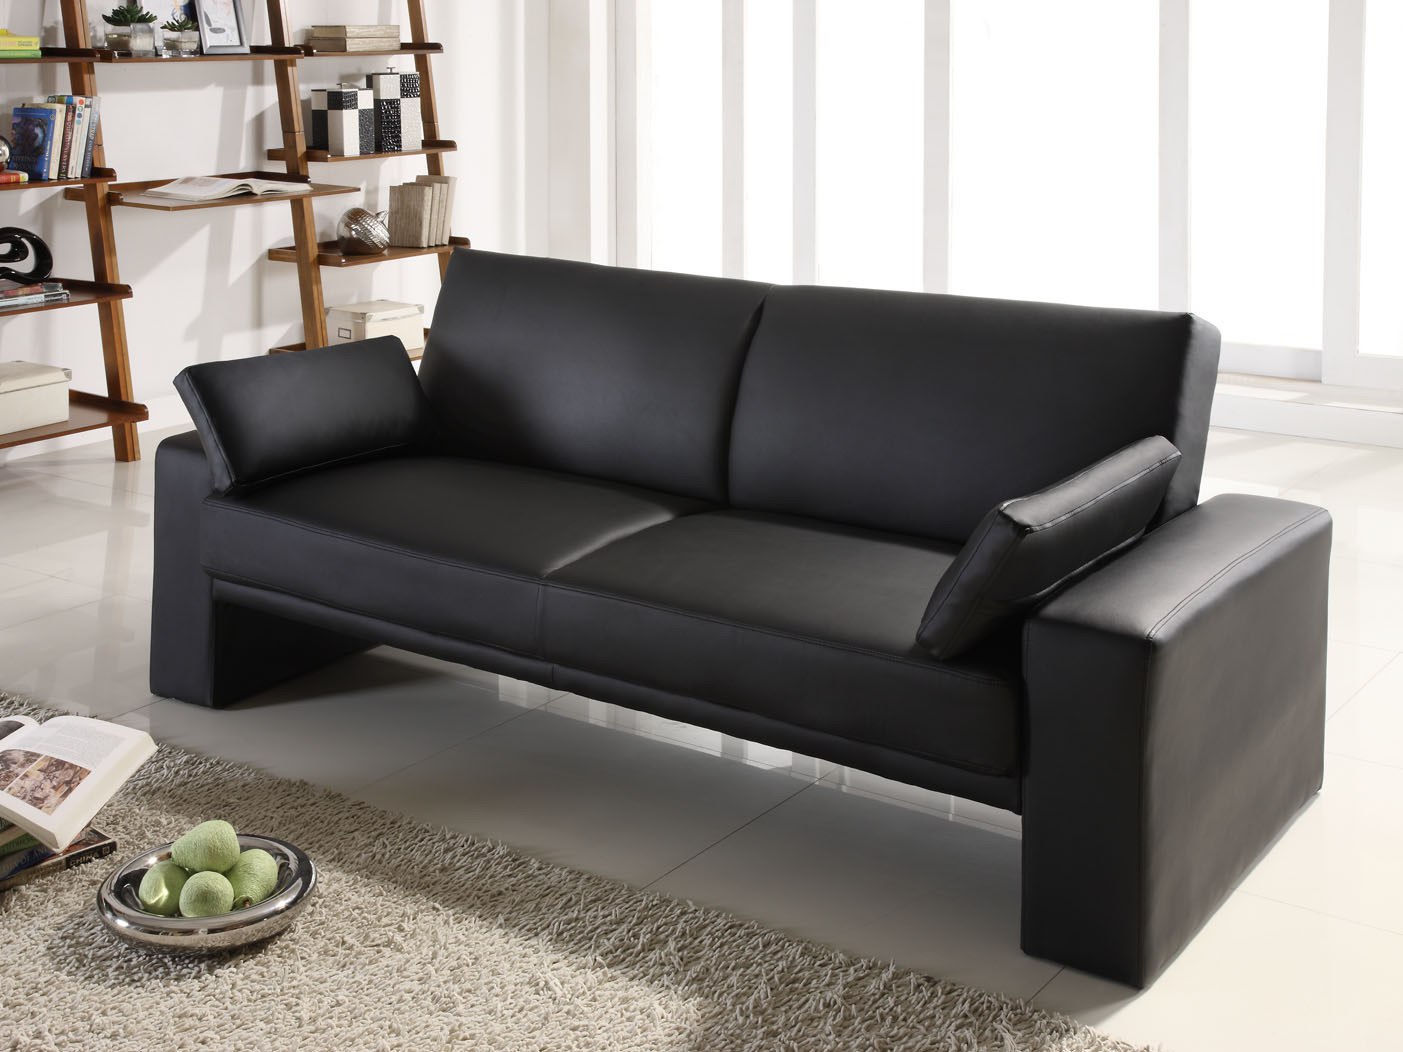 How to get a perfect sofa bed on sale 12 how to get a for Sofa bed on sale